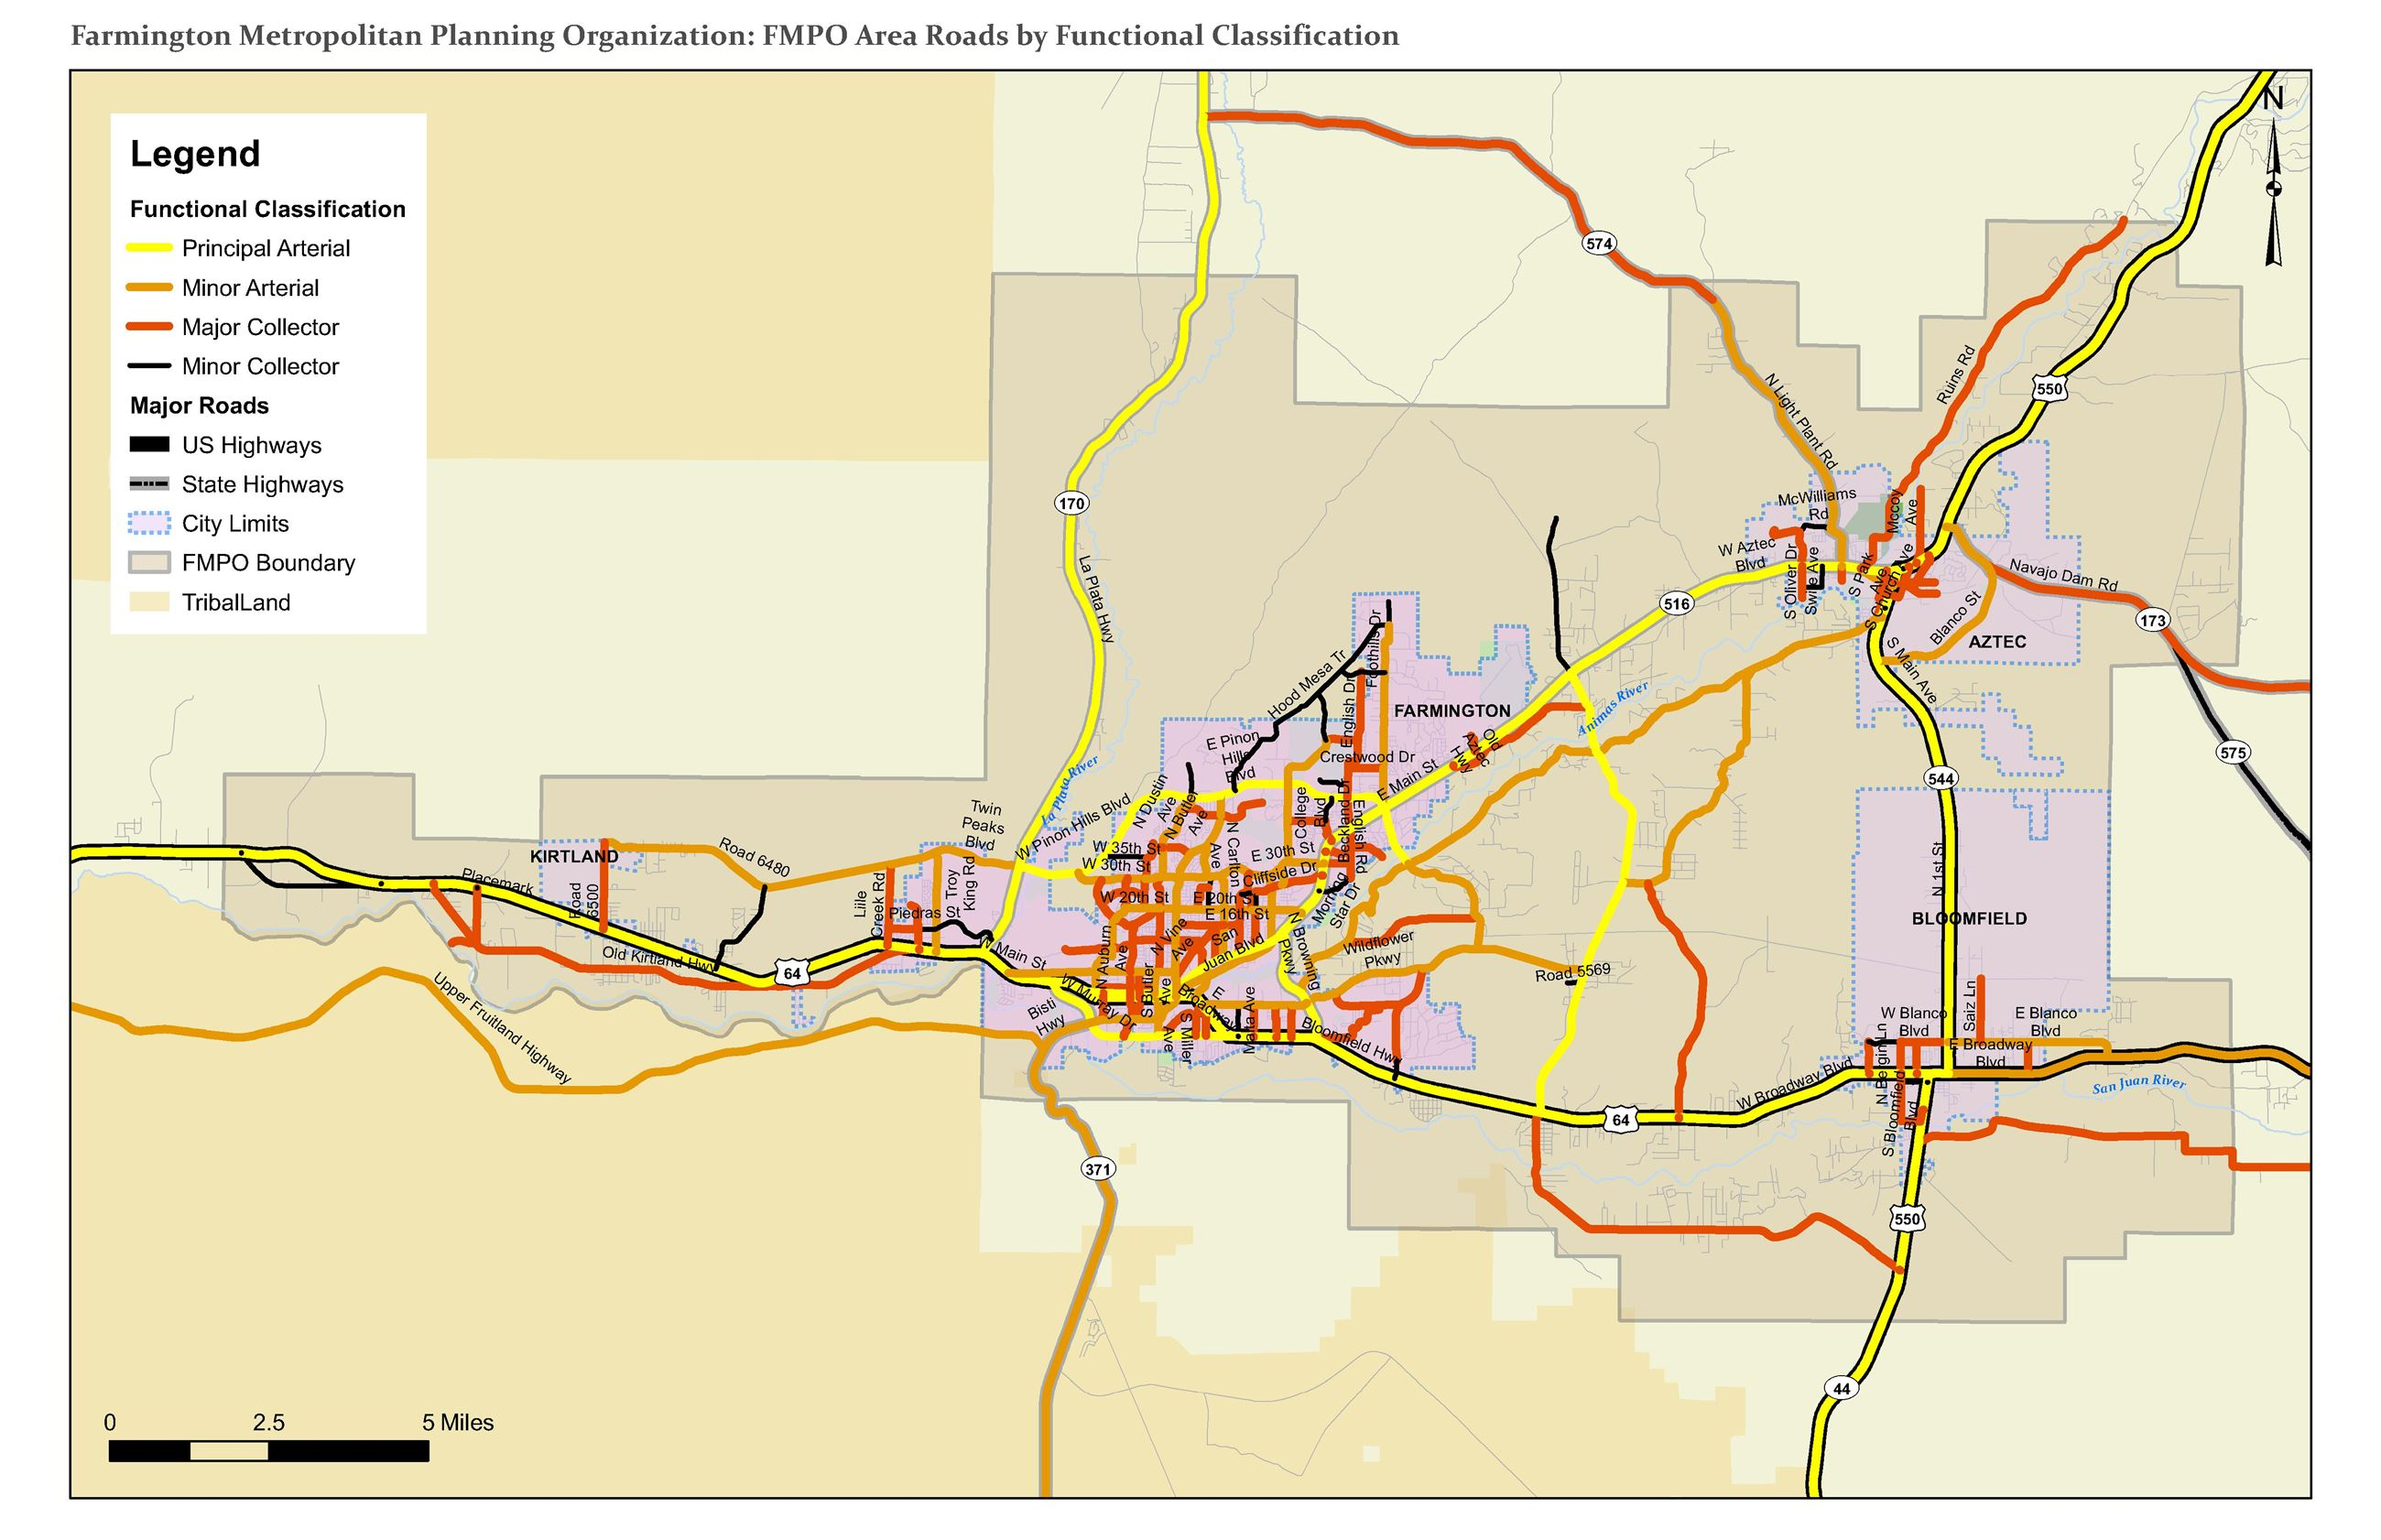 Map - FMPO Area Roads by Functional Classification Opens in new window